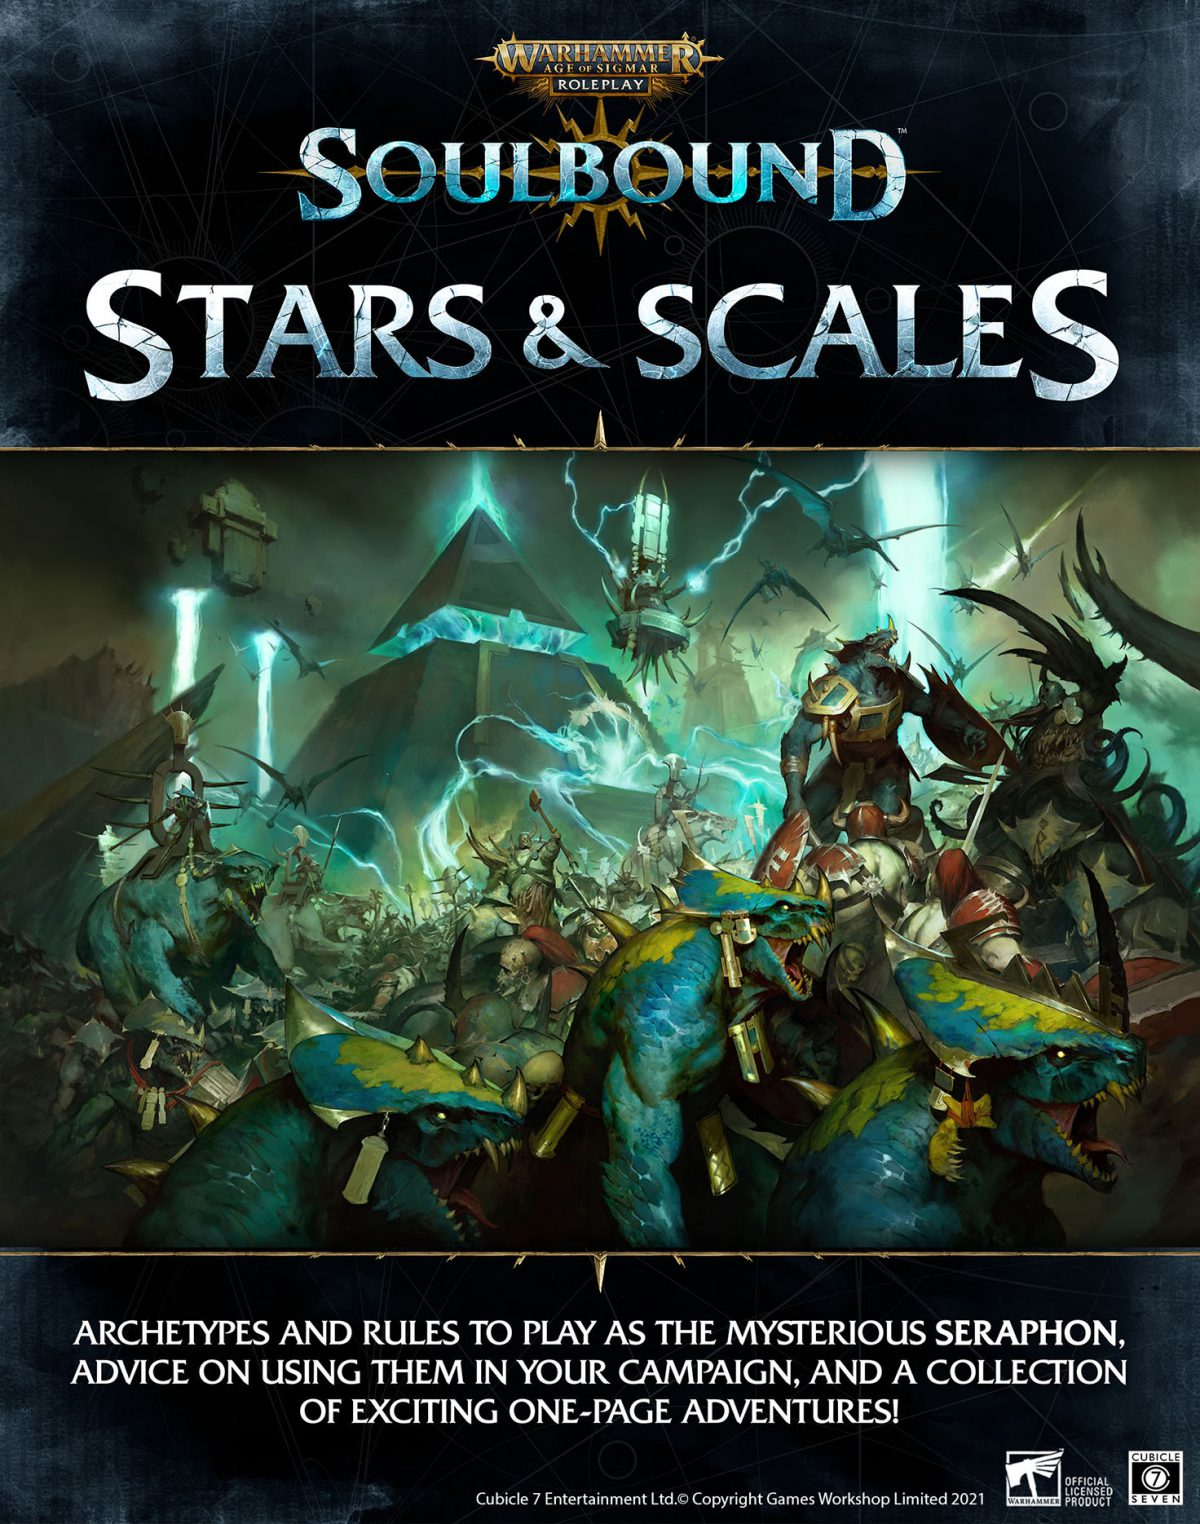 Warhammer Age of Sigmar Soulbound: Mysterious Seraphon!